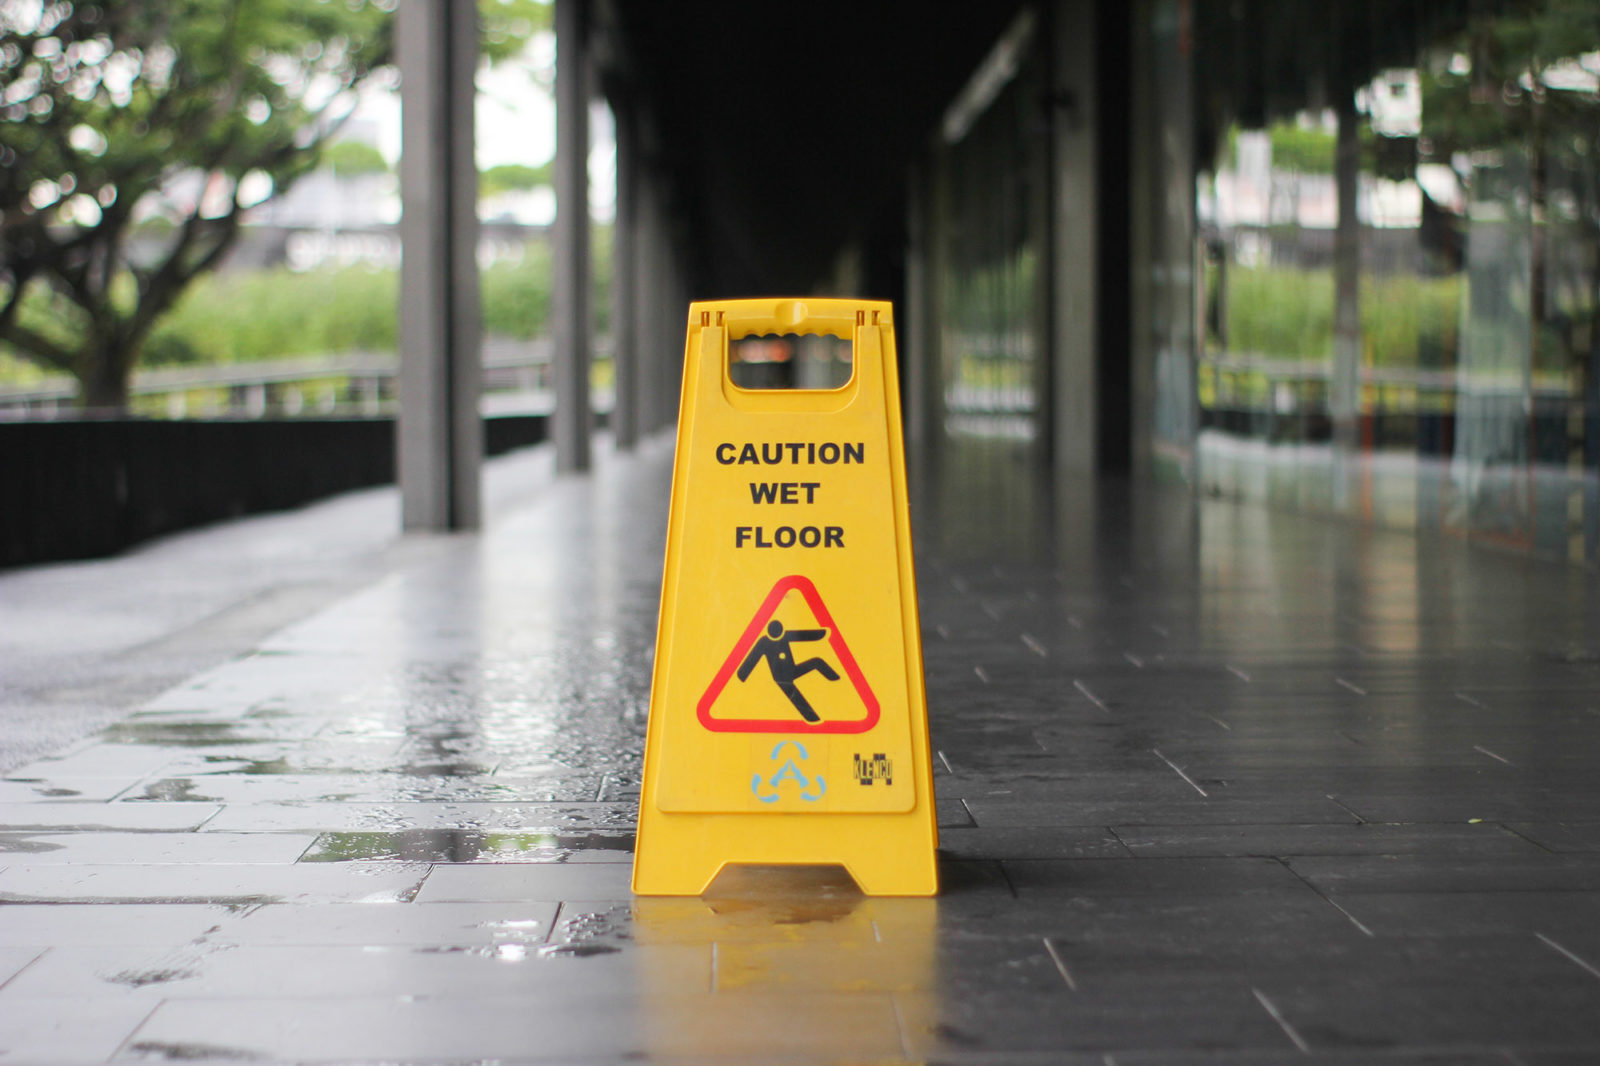 Wet floor sign in the middle of a puddle of water